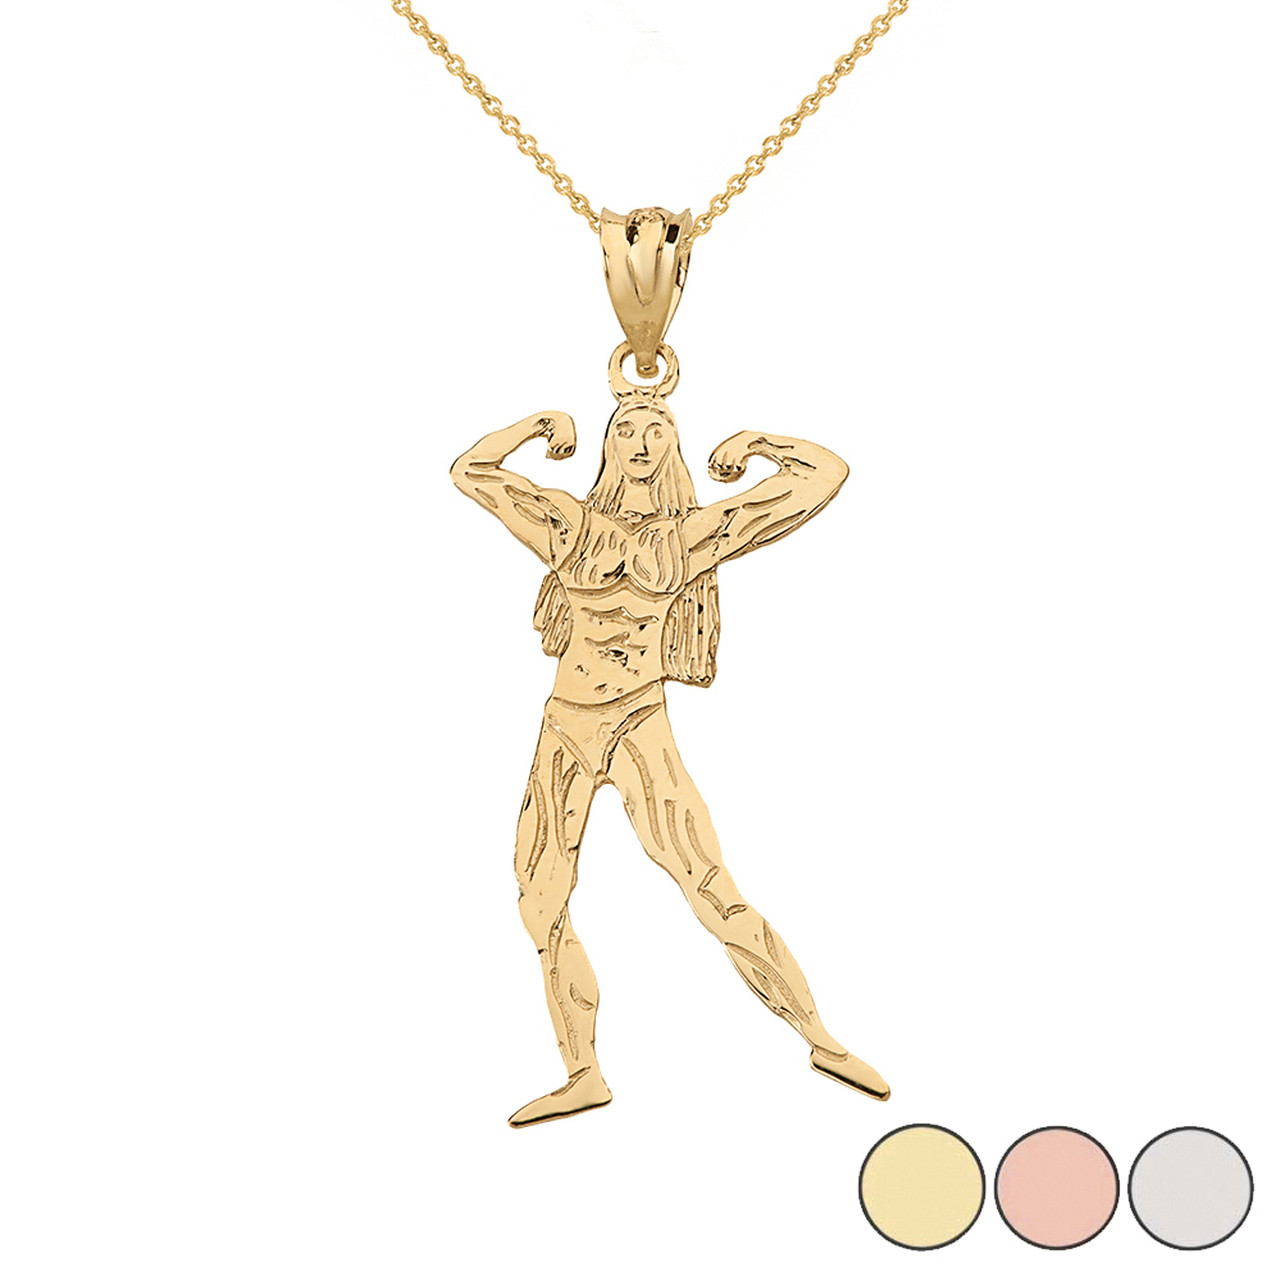 244639c478e Weightlifting Fitness Sport Female Bodybuilder Pendant Necklace in Solid  Gold (Yellow/Rose/White